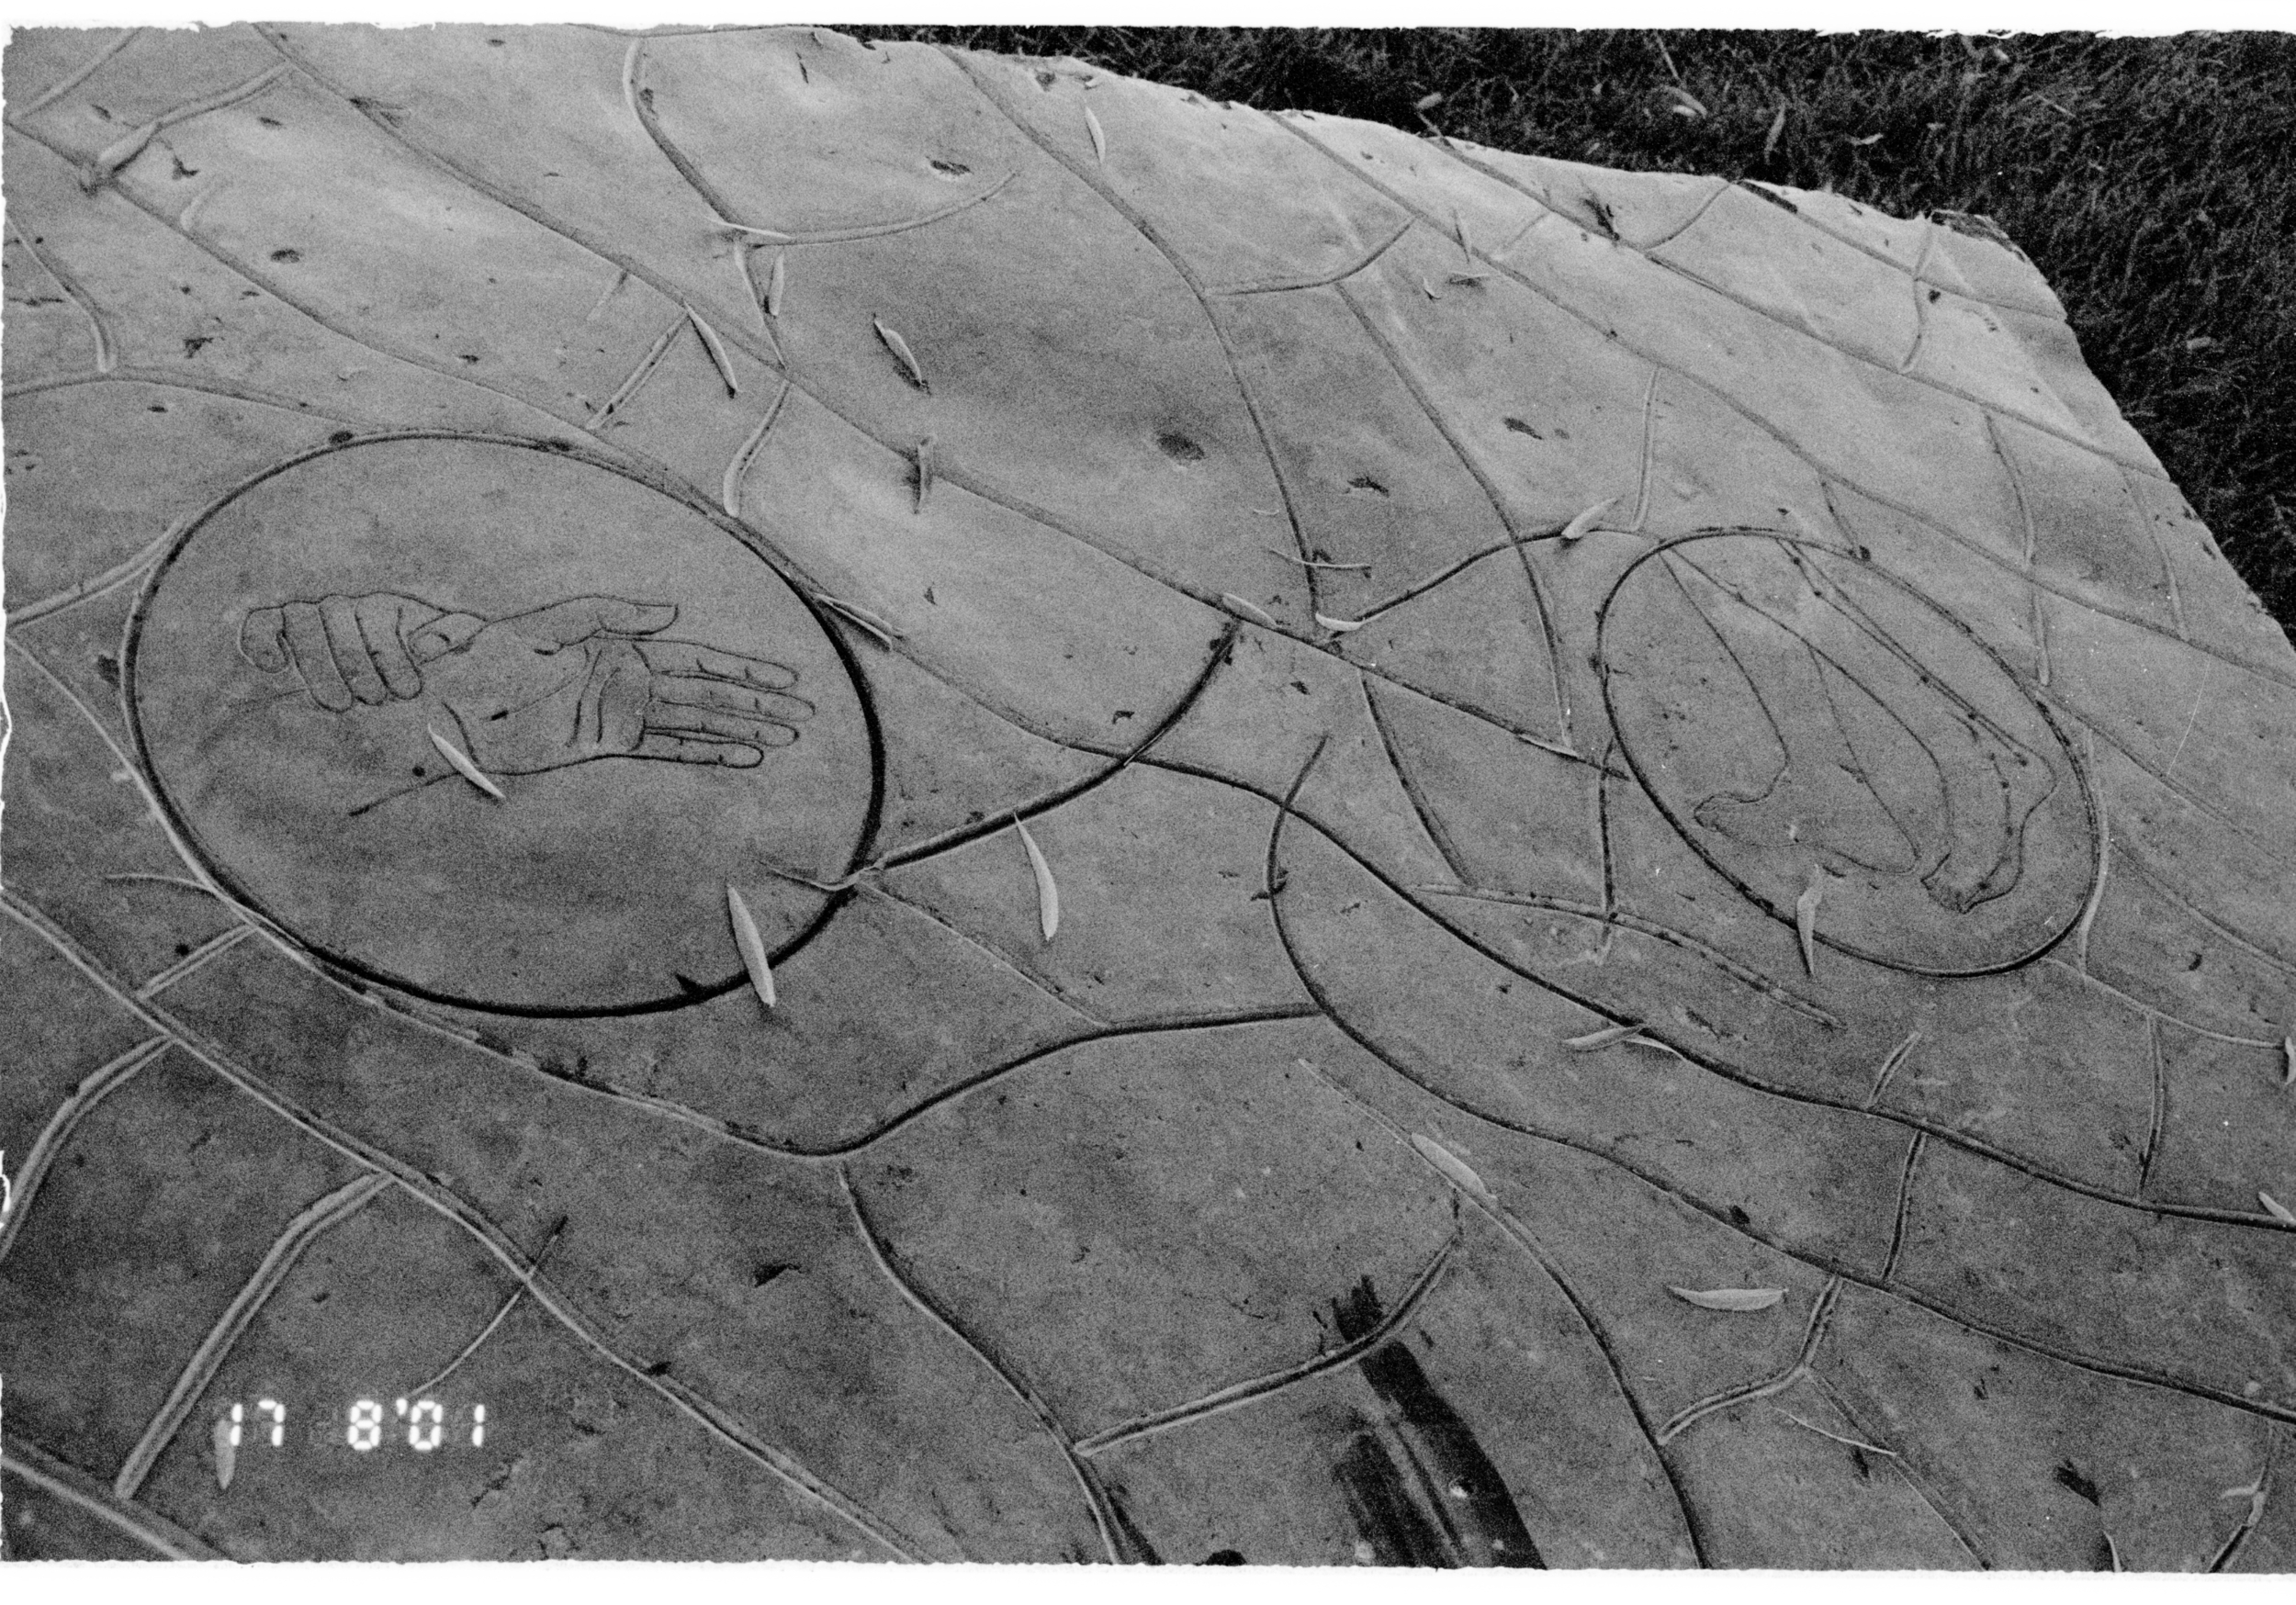 Middle Ground; Body. 2000. Permanent Collection of Yanqing County, Beijing, P.R. China. Public furniture series produced in carved granite in collaboration with stone craftsmen of Shandong Province.